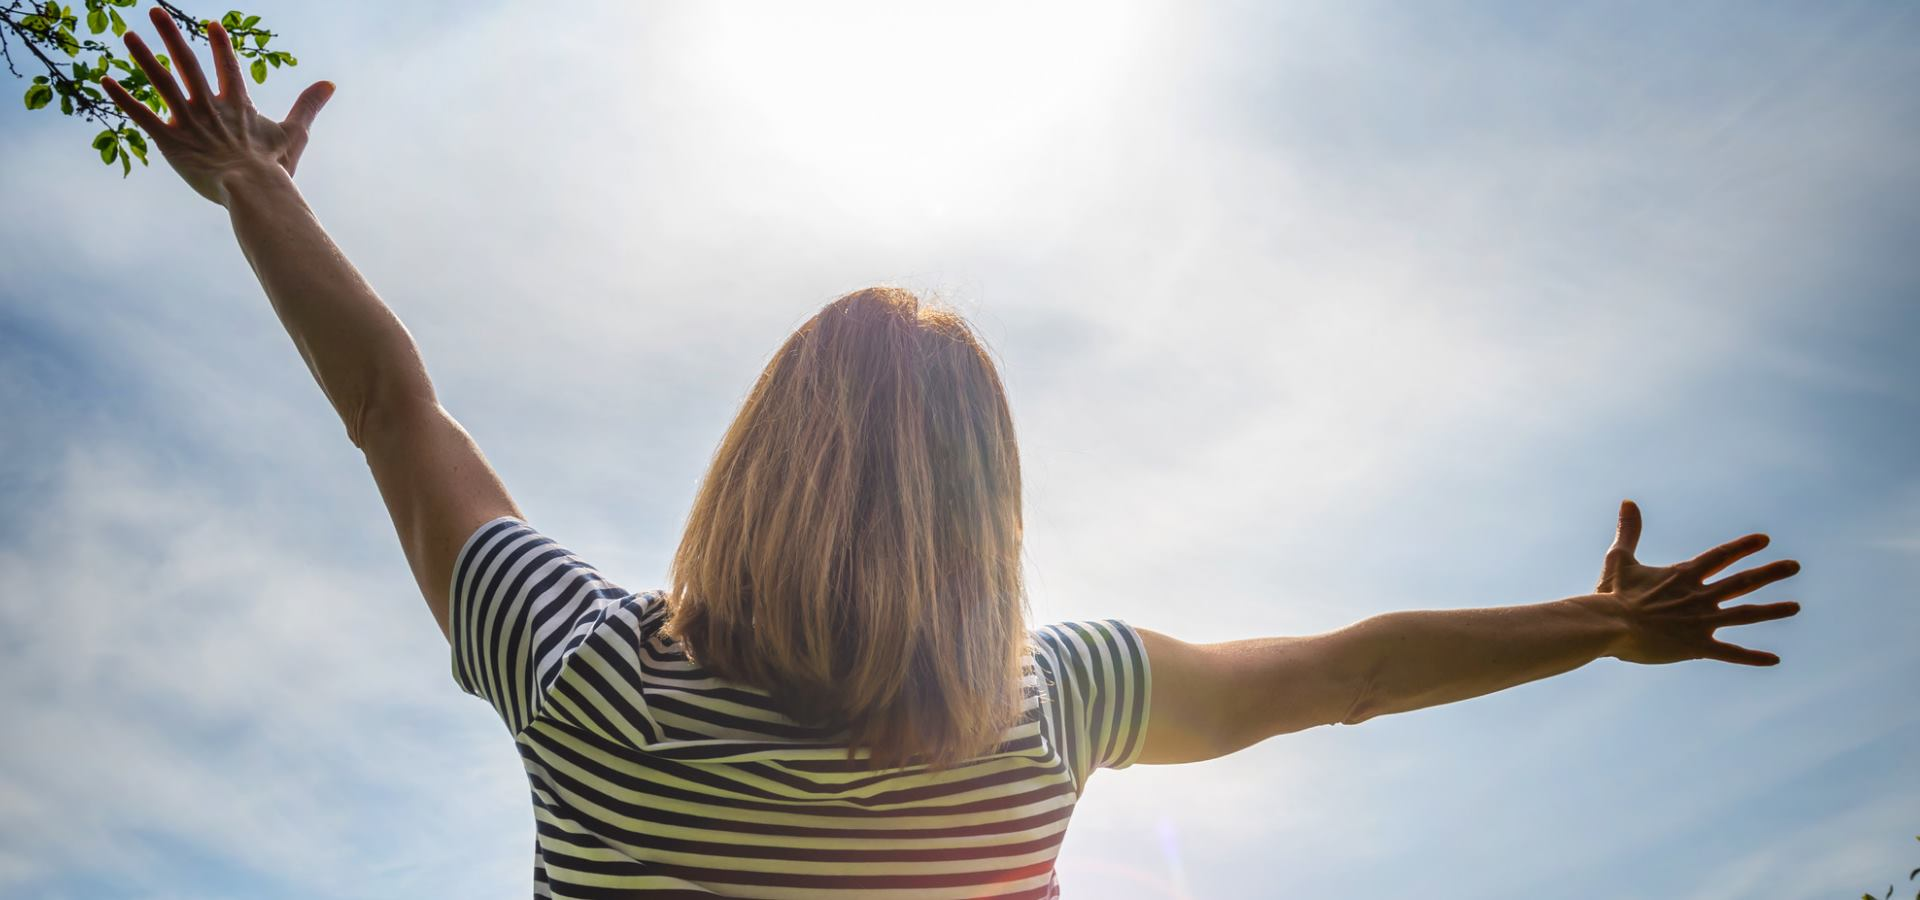 A woman outside reaching for the sky breathing in fresh air